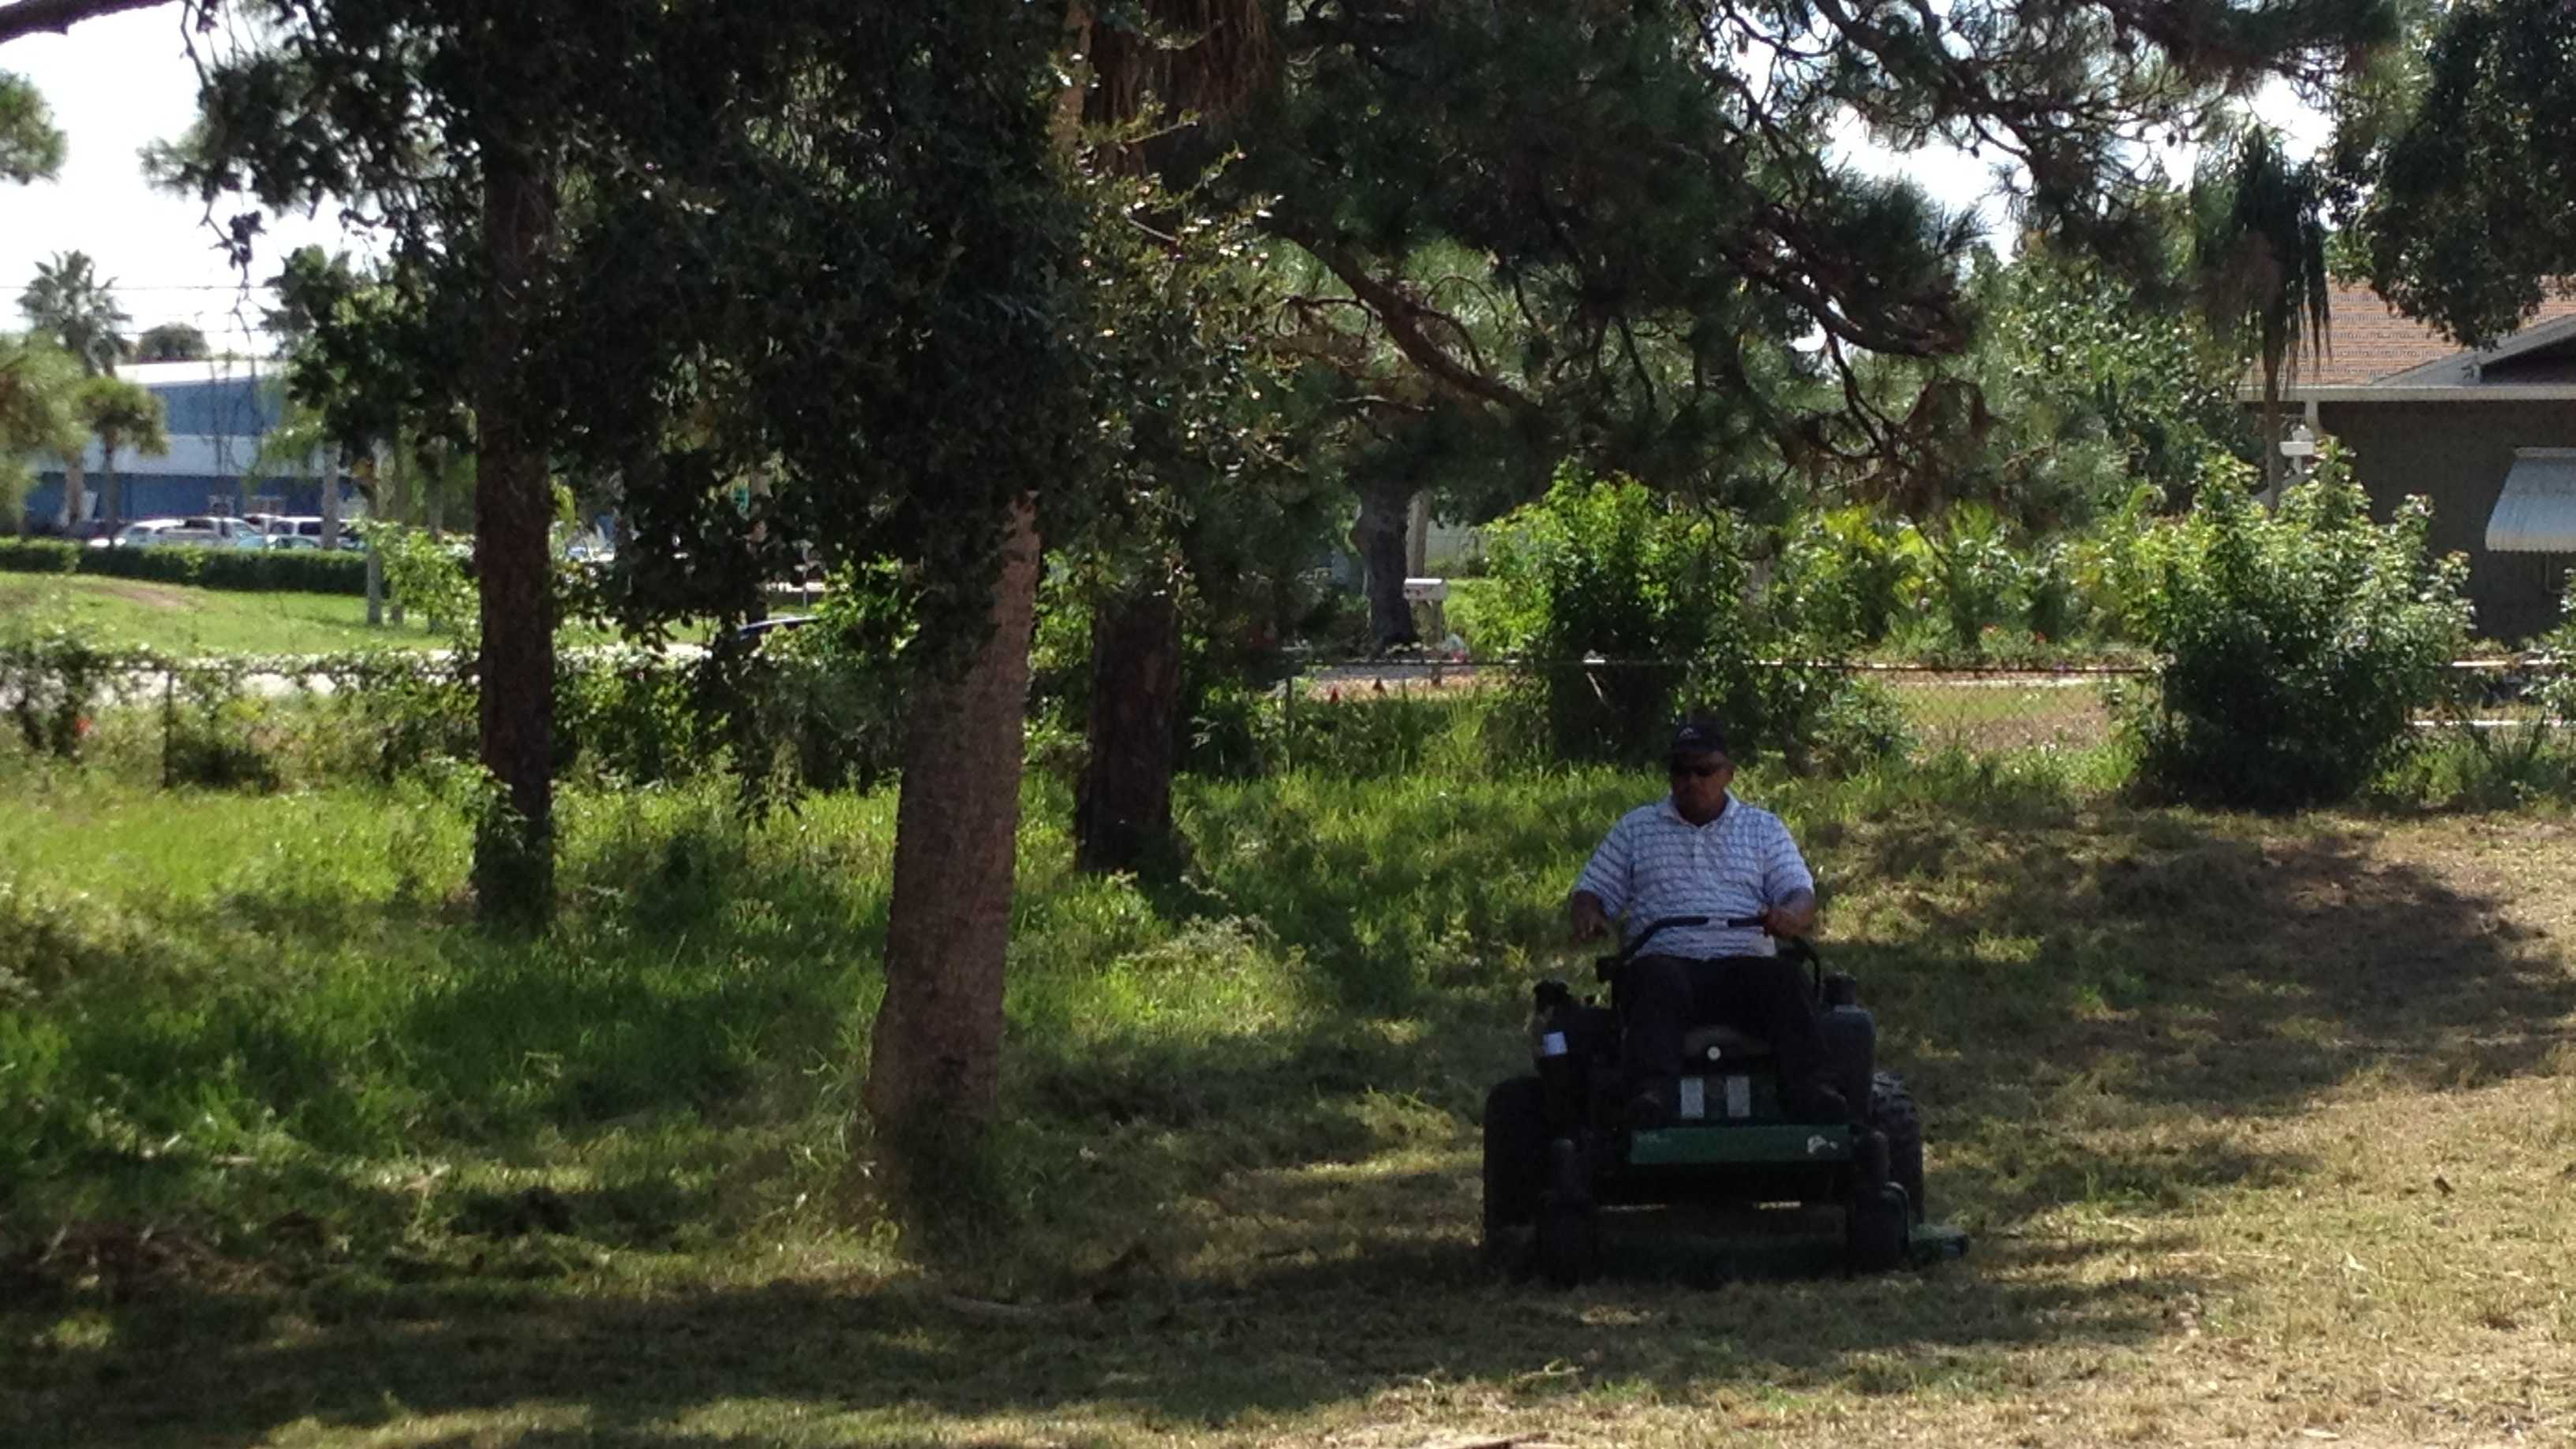 Gary McKinnond is mowing an overgrown cemetery in Vero Beach.